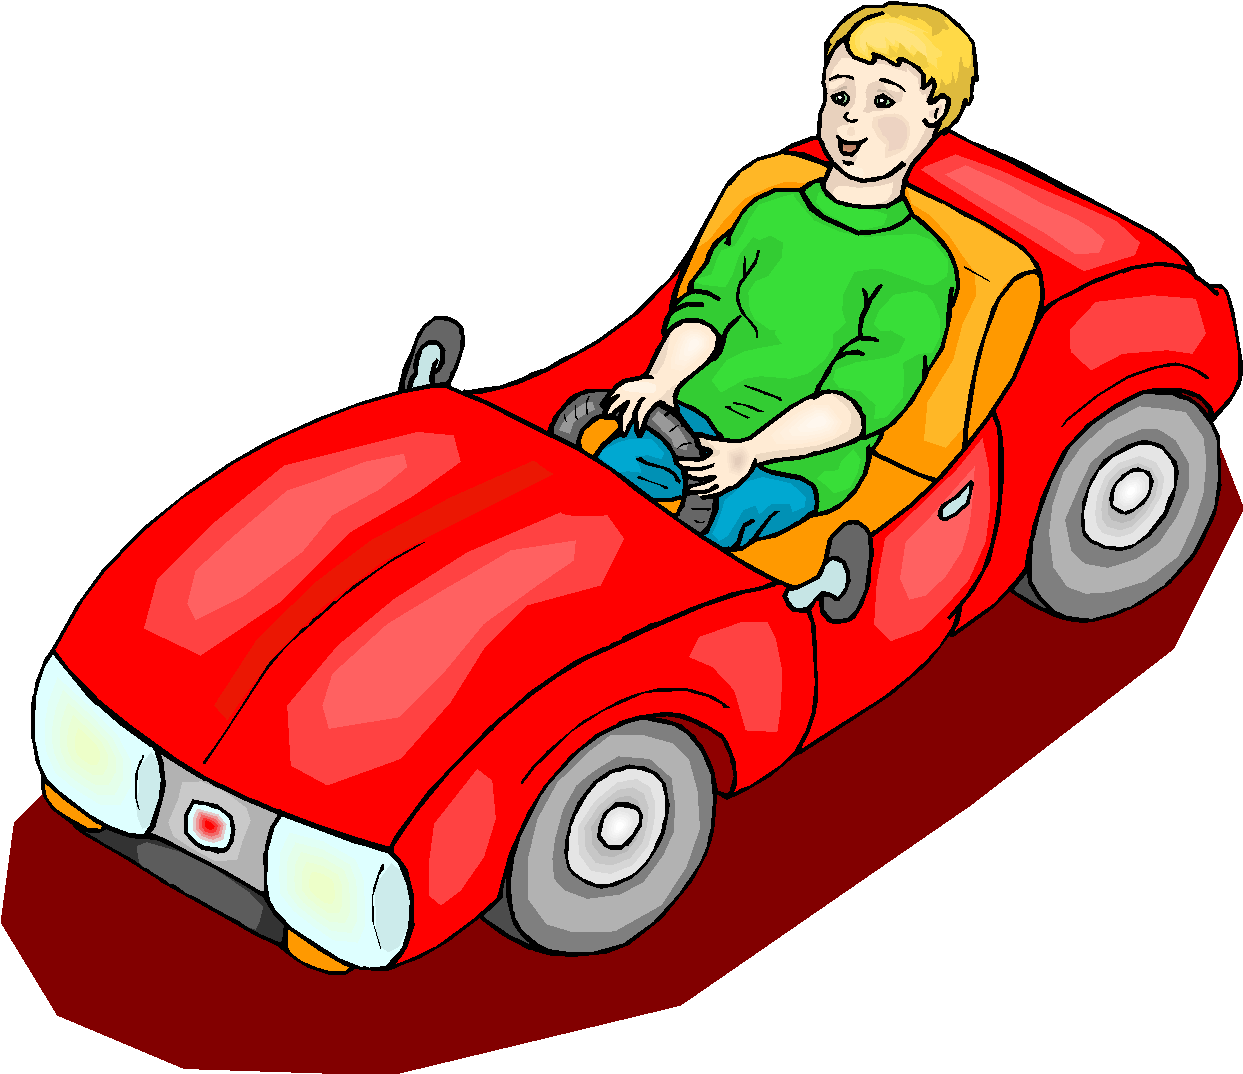 clip clipart ride riding boy cars mini blaze rider boys driving cliparts library clipartpanda toy playing microsoft clipground classic powerpoint